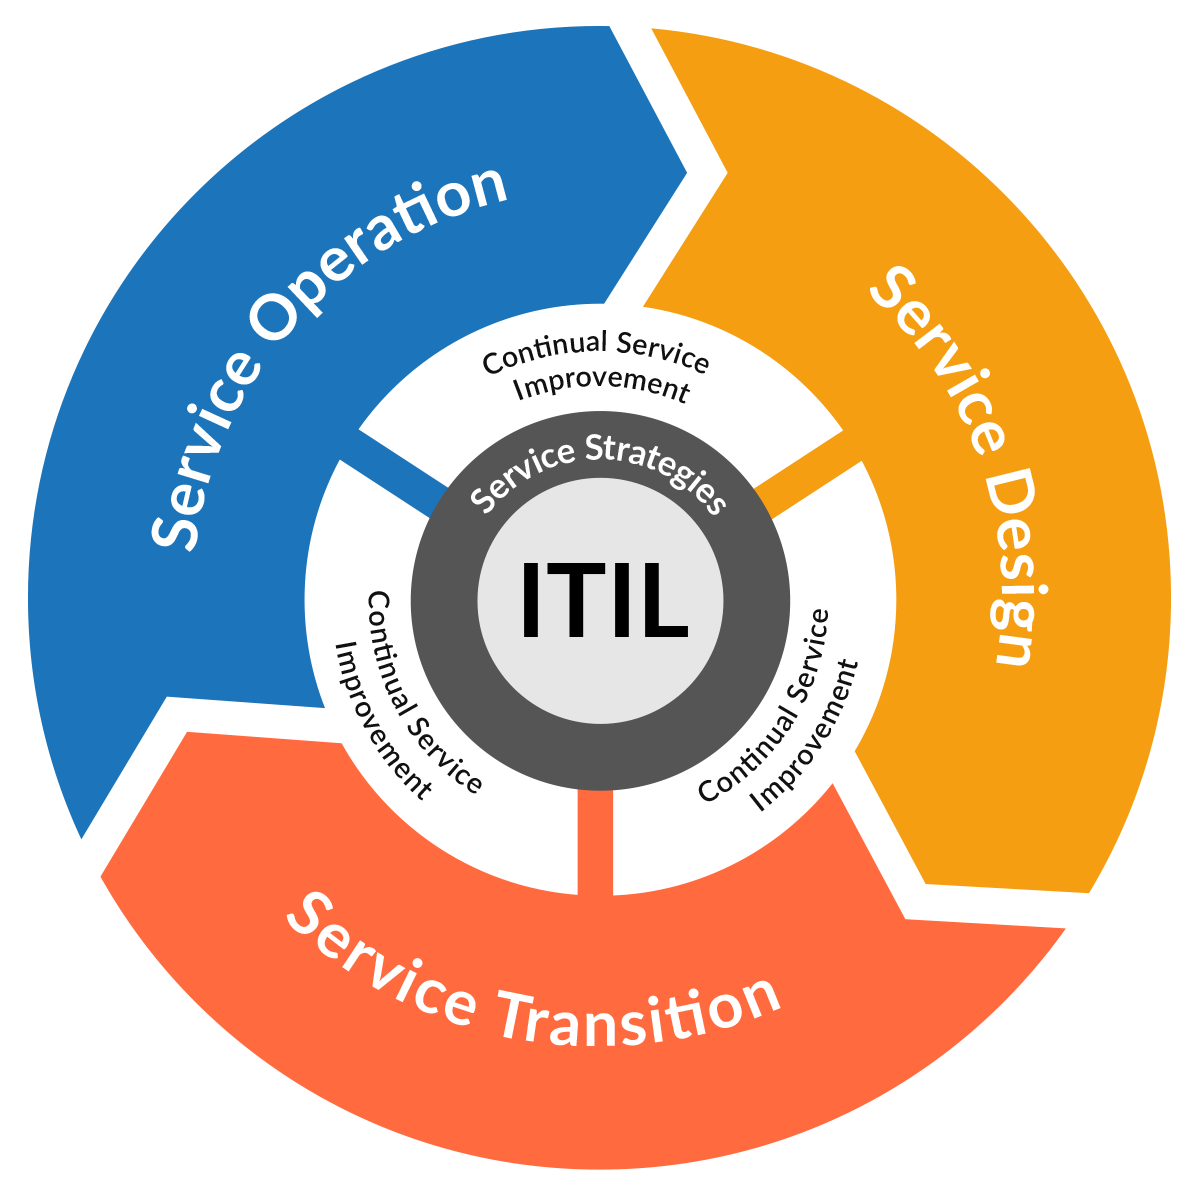 ITIL Version 3 Diagram | HelpSystems